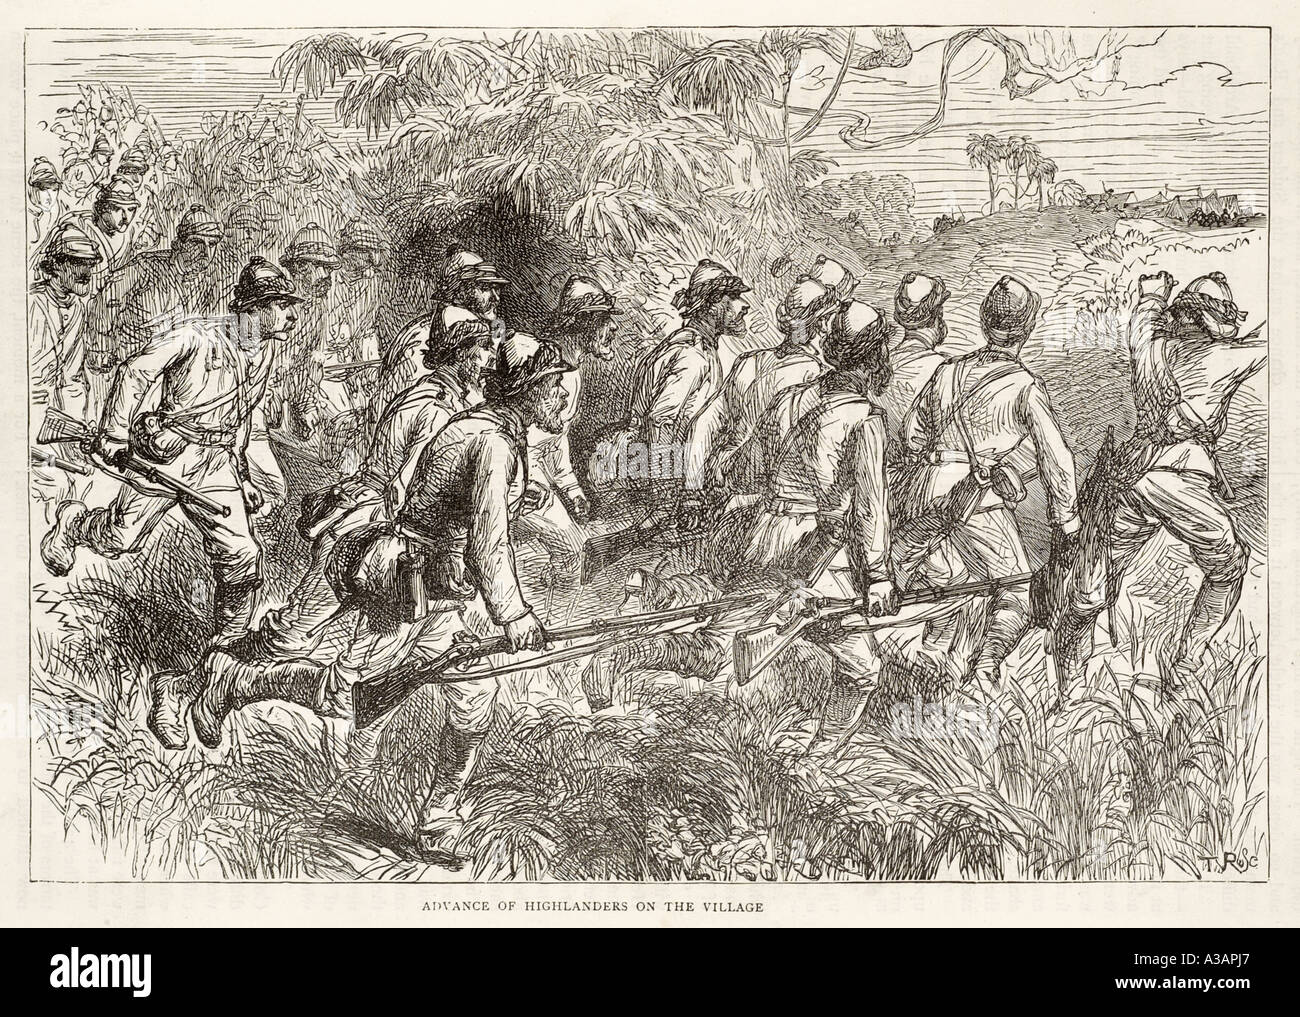 highlander Battle of amoaful 1874 ashantee ashante Africa war history soldier military jungle forest native rifle troop expediti - Stock Image